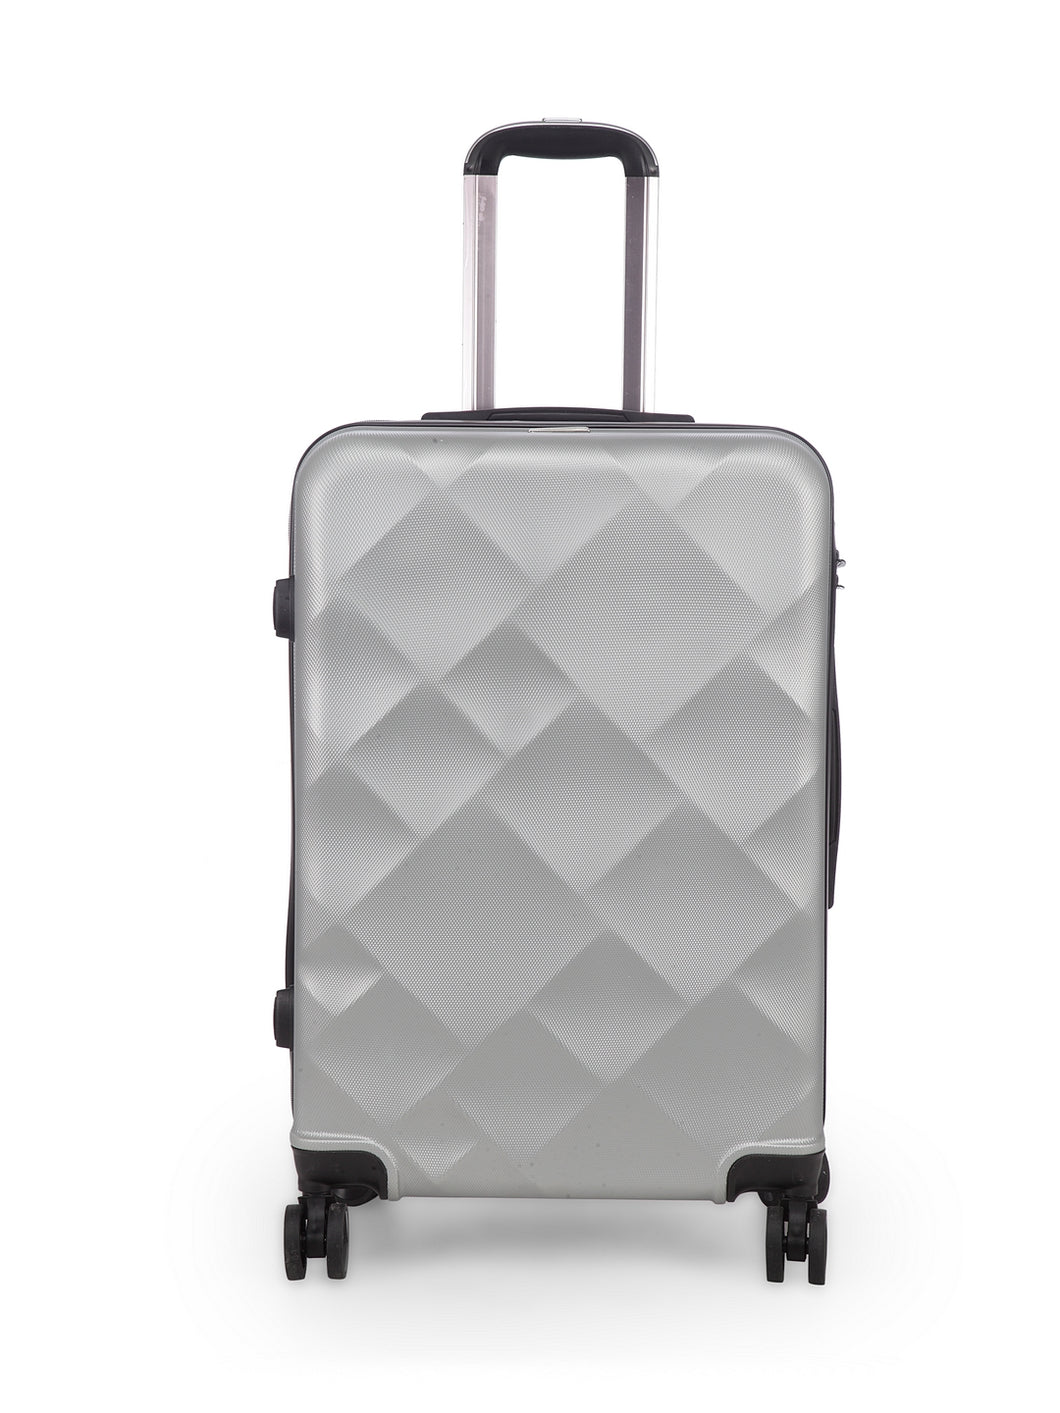 Unisex Silver Textured Hard-Sided Large Trolley Suitcase